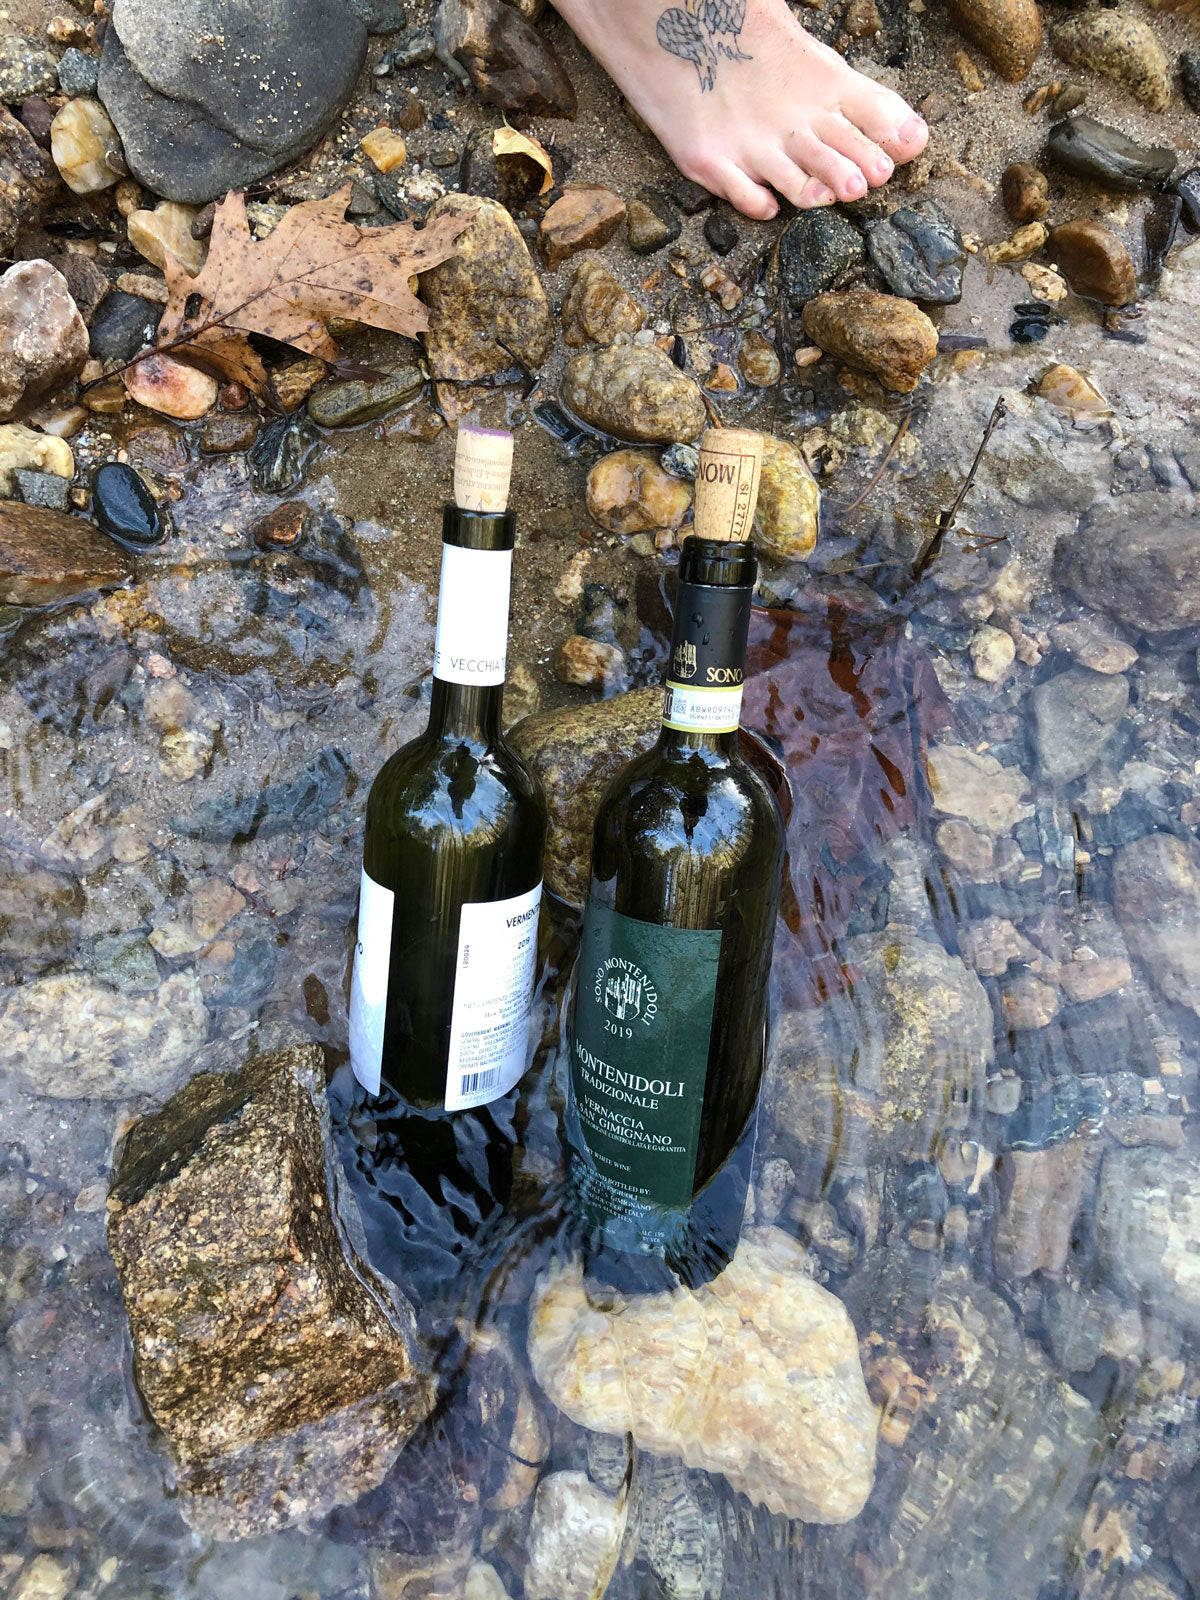 Keeping wine cool in the river.